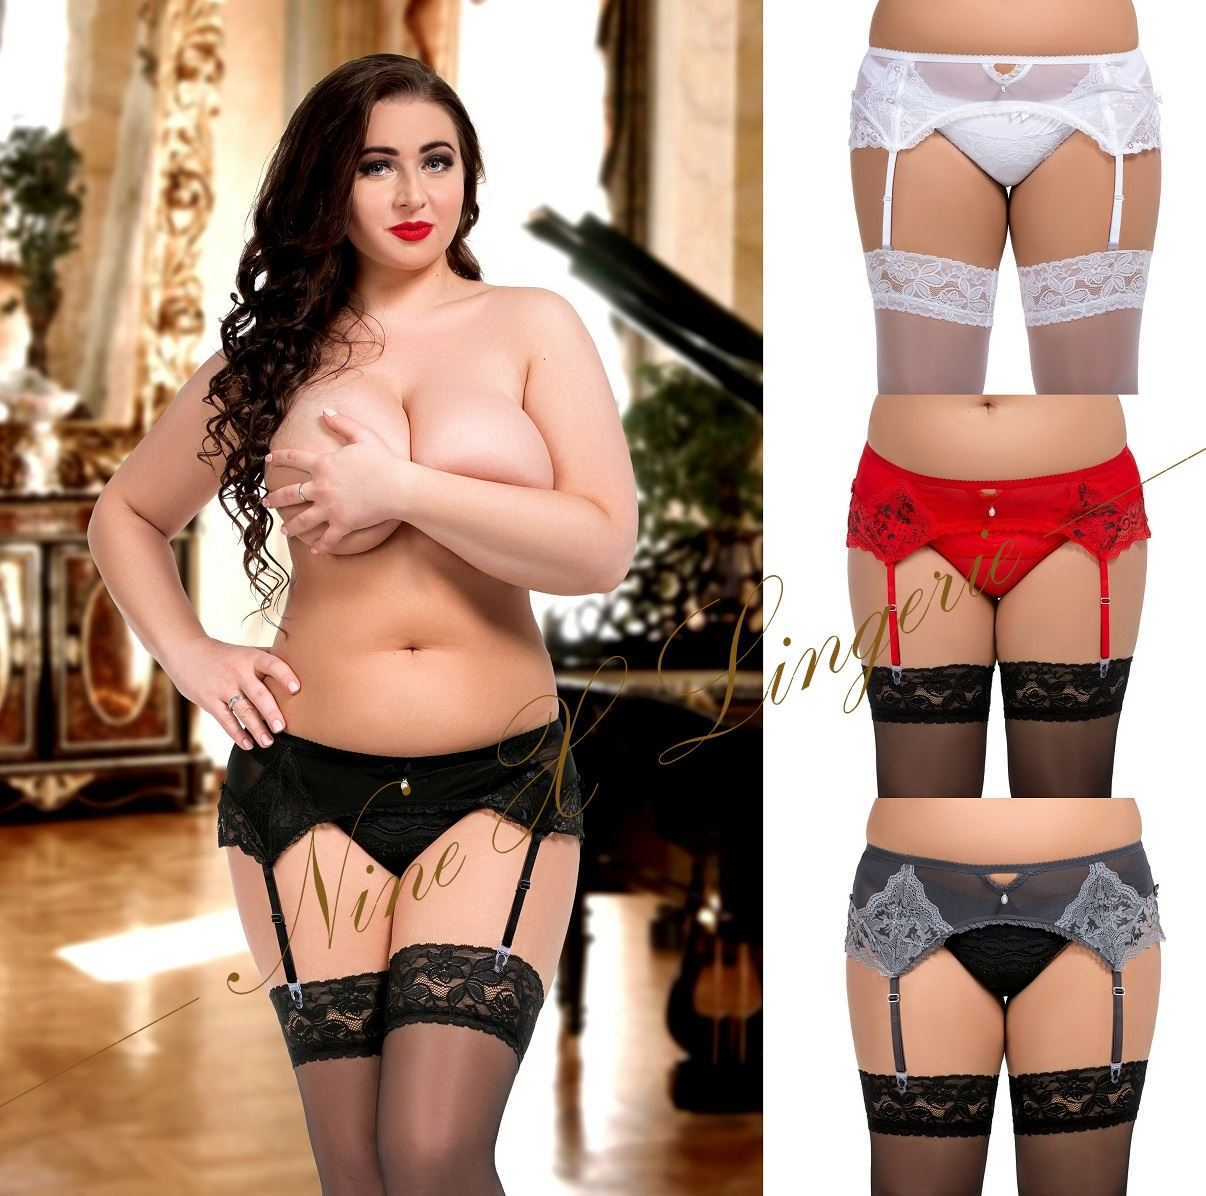 Nine X Plus Size S-8XL 8-28 Sexy Lace & Mesh Garter Belt Suspender ...